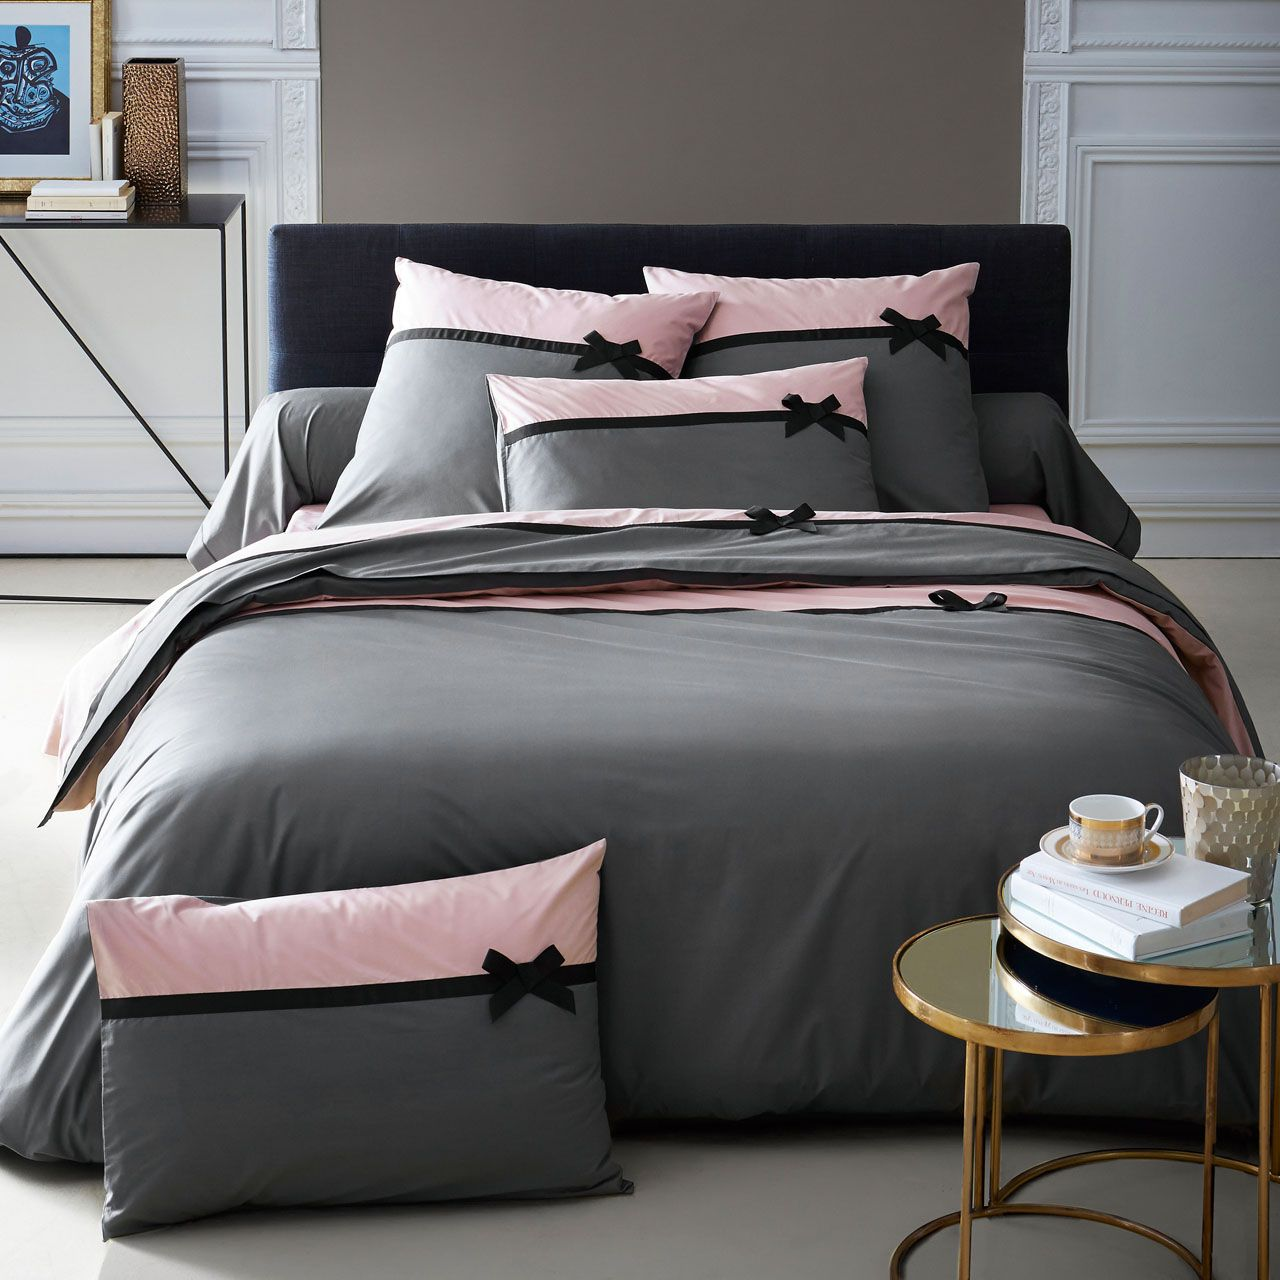 housse de couette percale frou frou anthracite 260x240 tradilinge. Black Bedroom Furniture Sets. Home Design Ideas